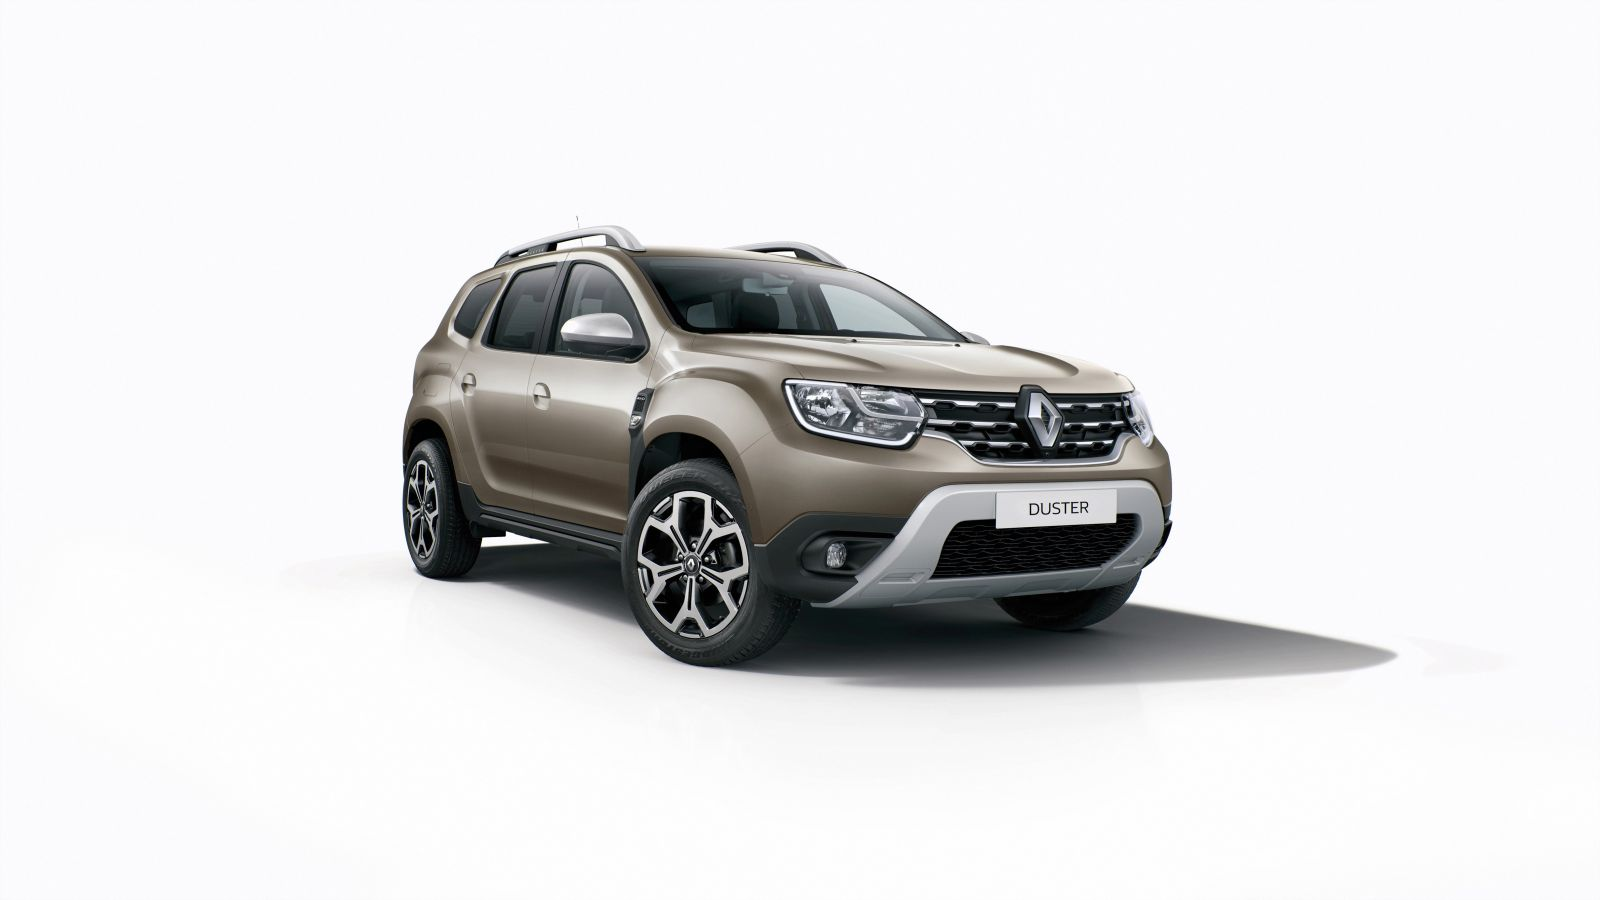 India bound 2018 renault duster makes global debut images for Interieur duster 2018